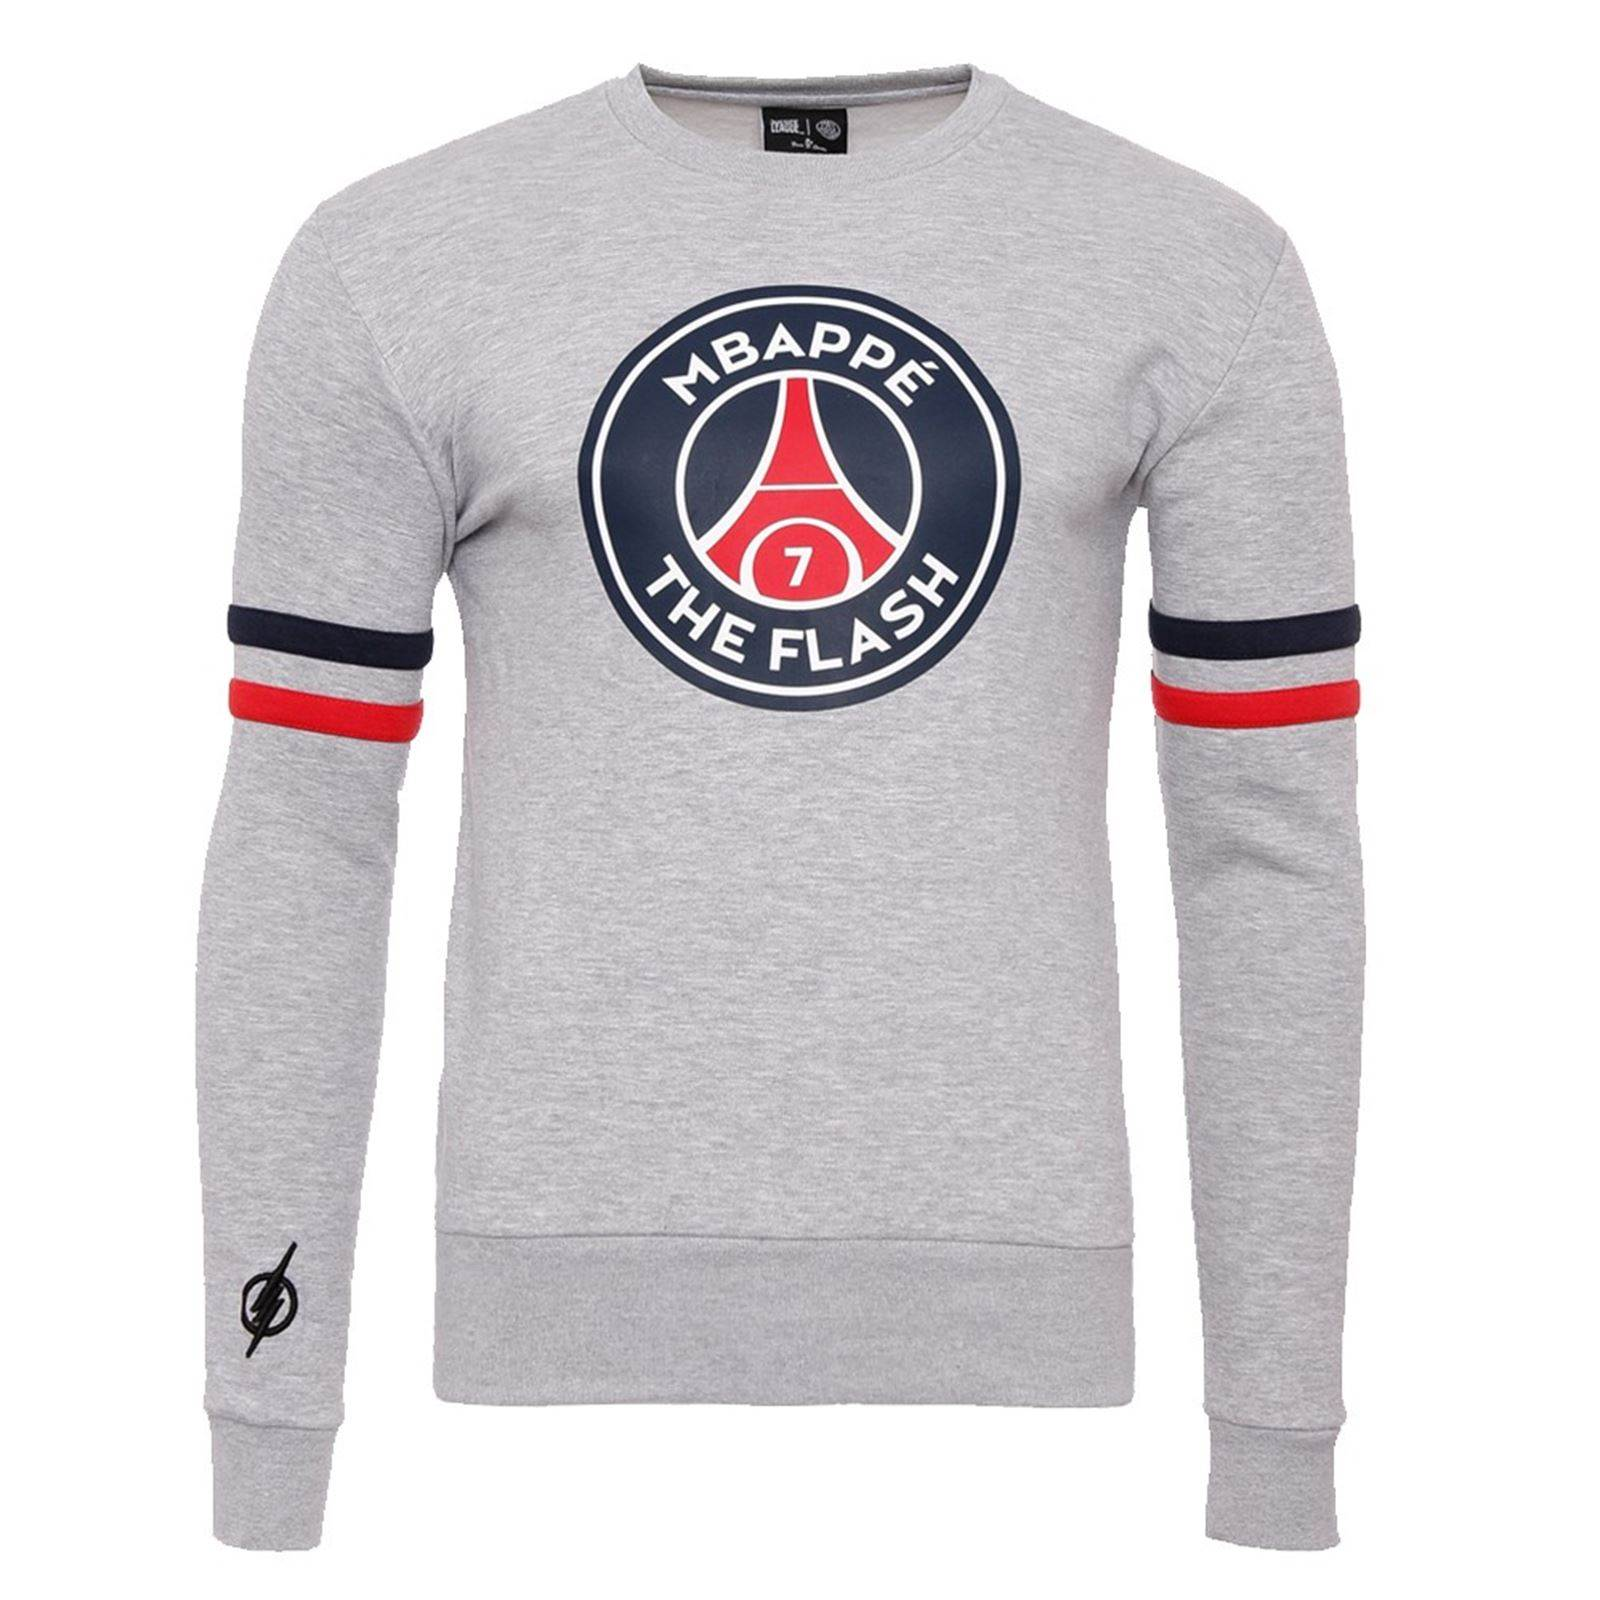 V Homme shirtGris Sweat shirtGris Psg Sweat Psg F1KJTcl